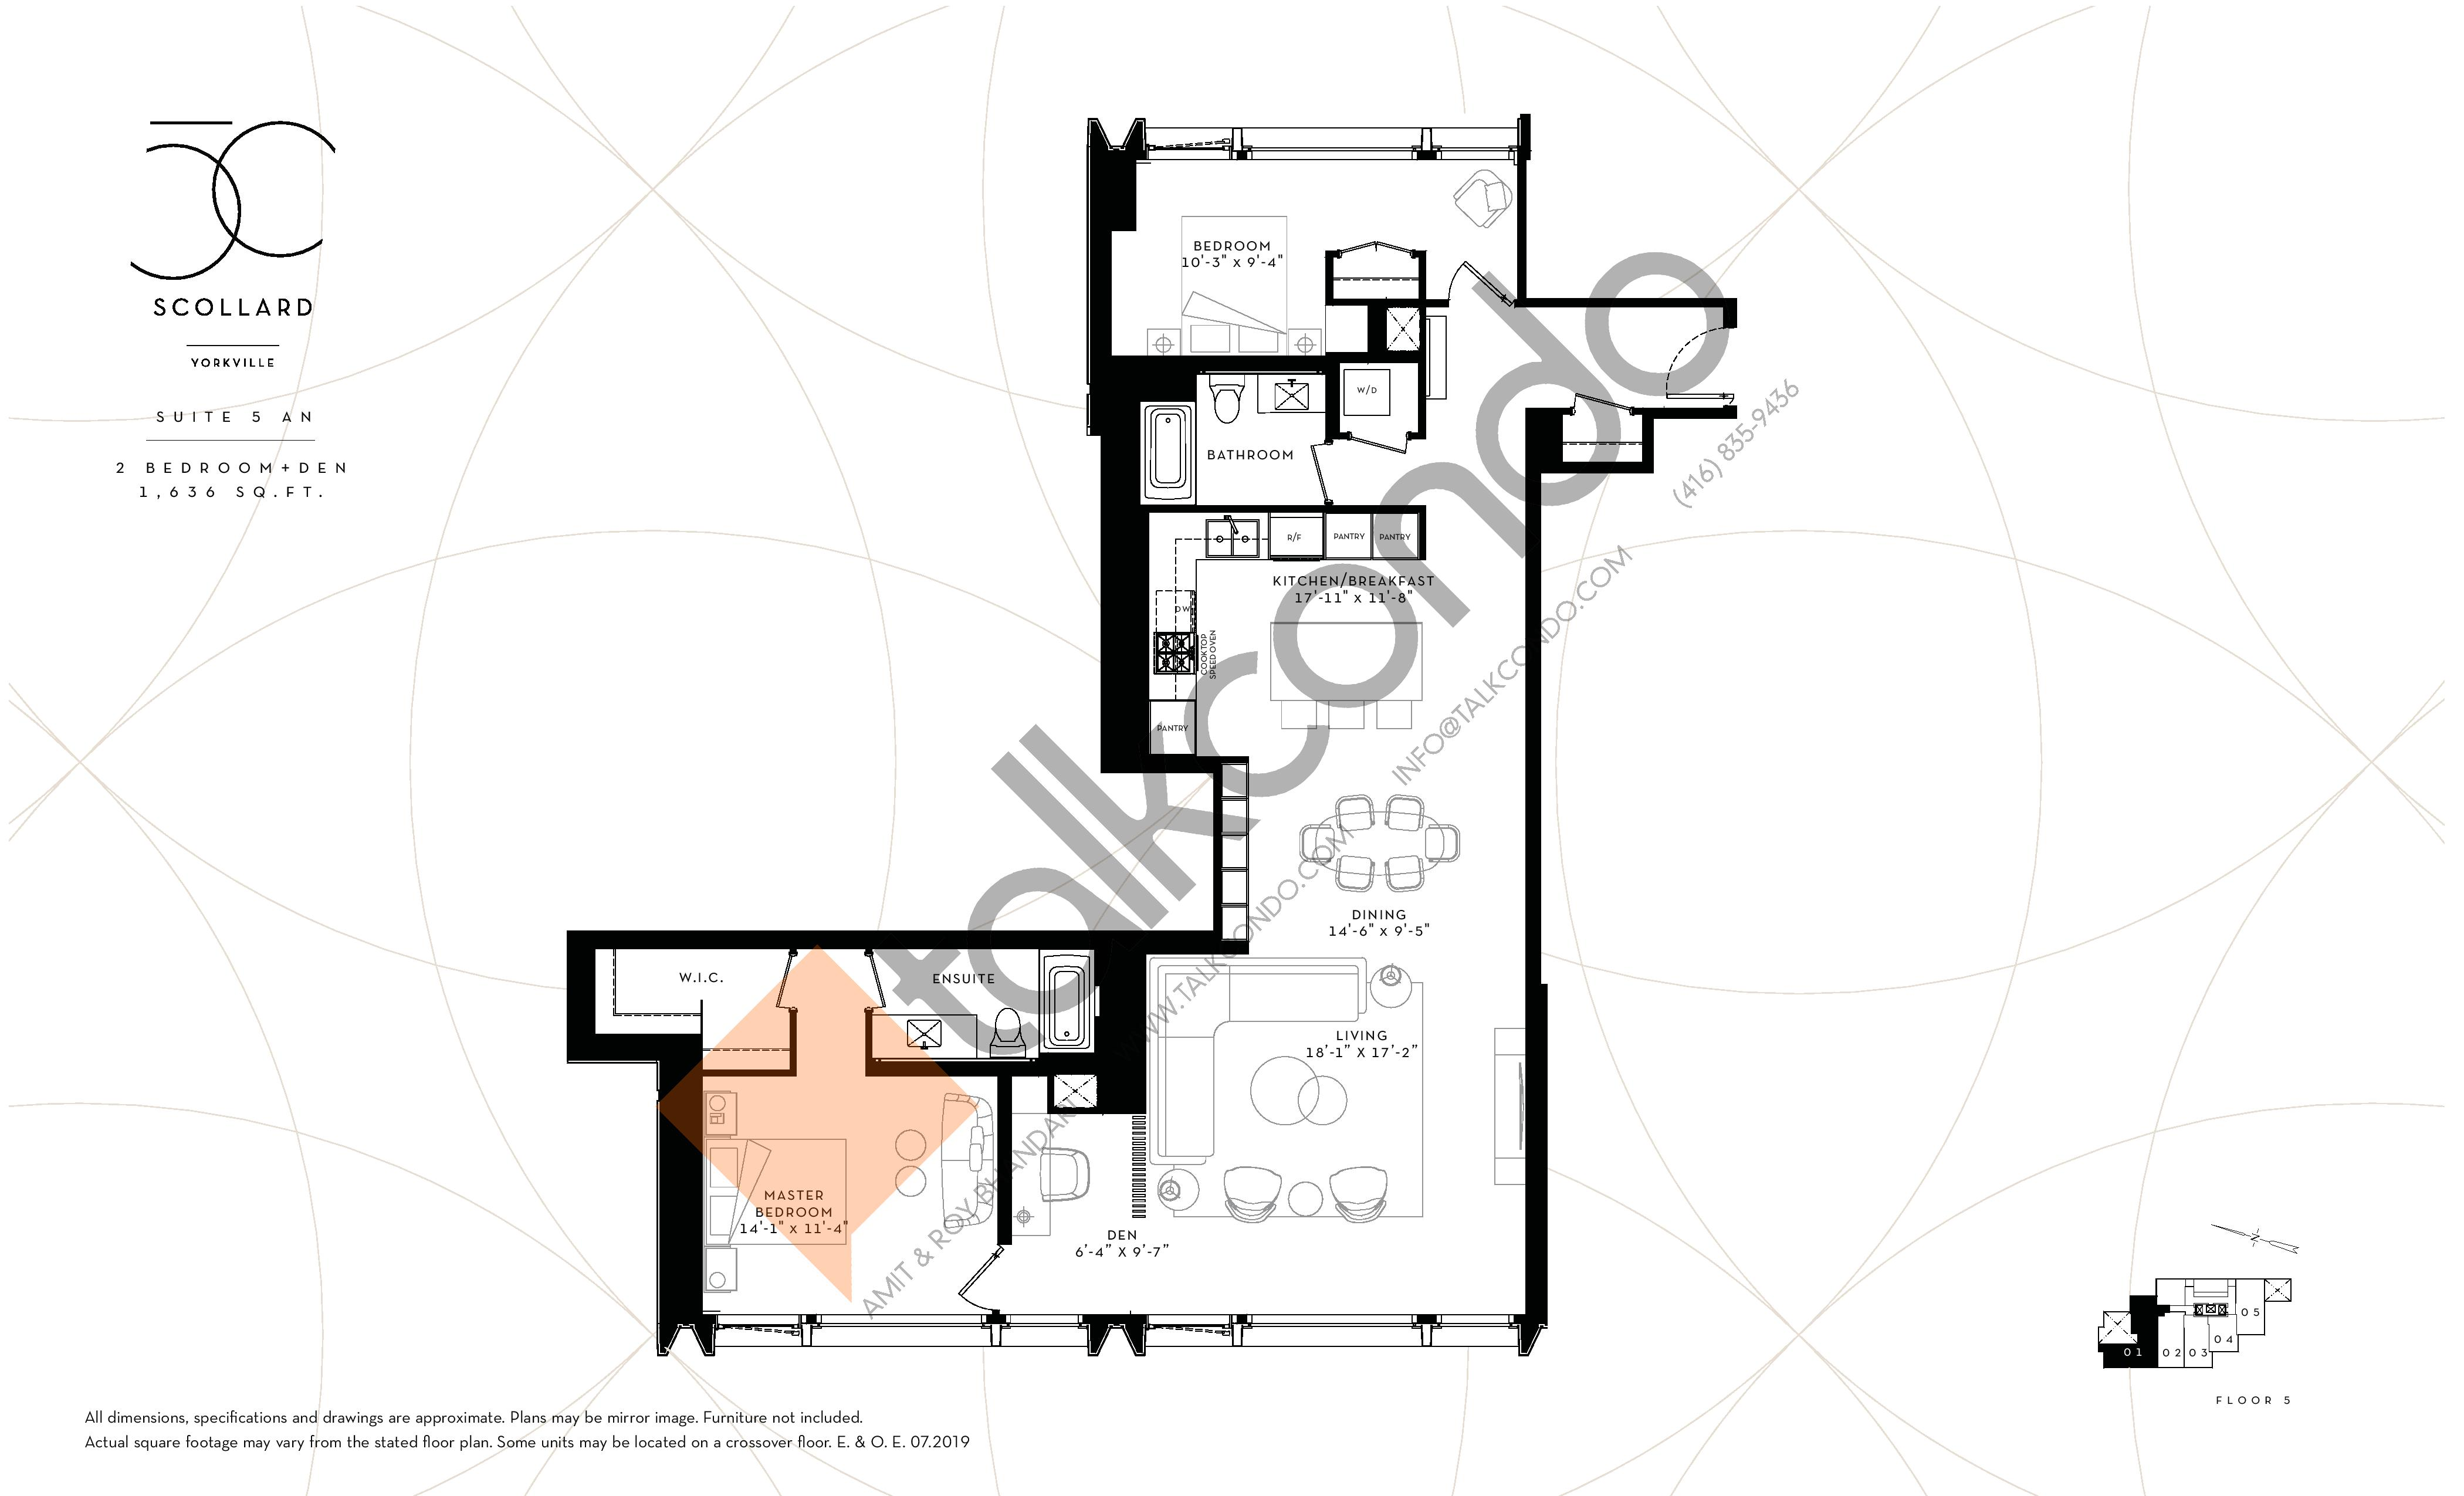 Suite 5 AN Floor Plan at Fifty Scollard Condos - 1636 sq.ft